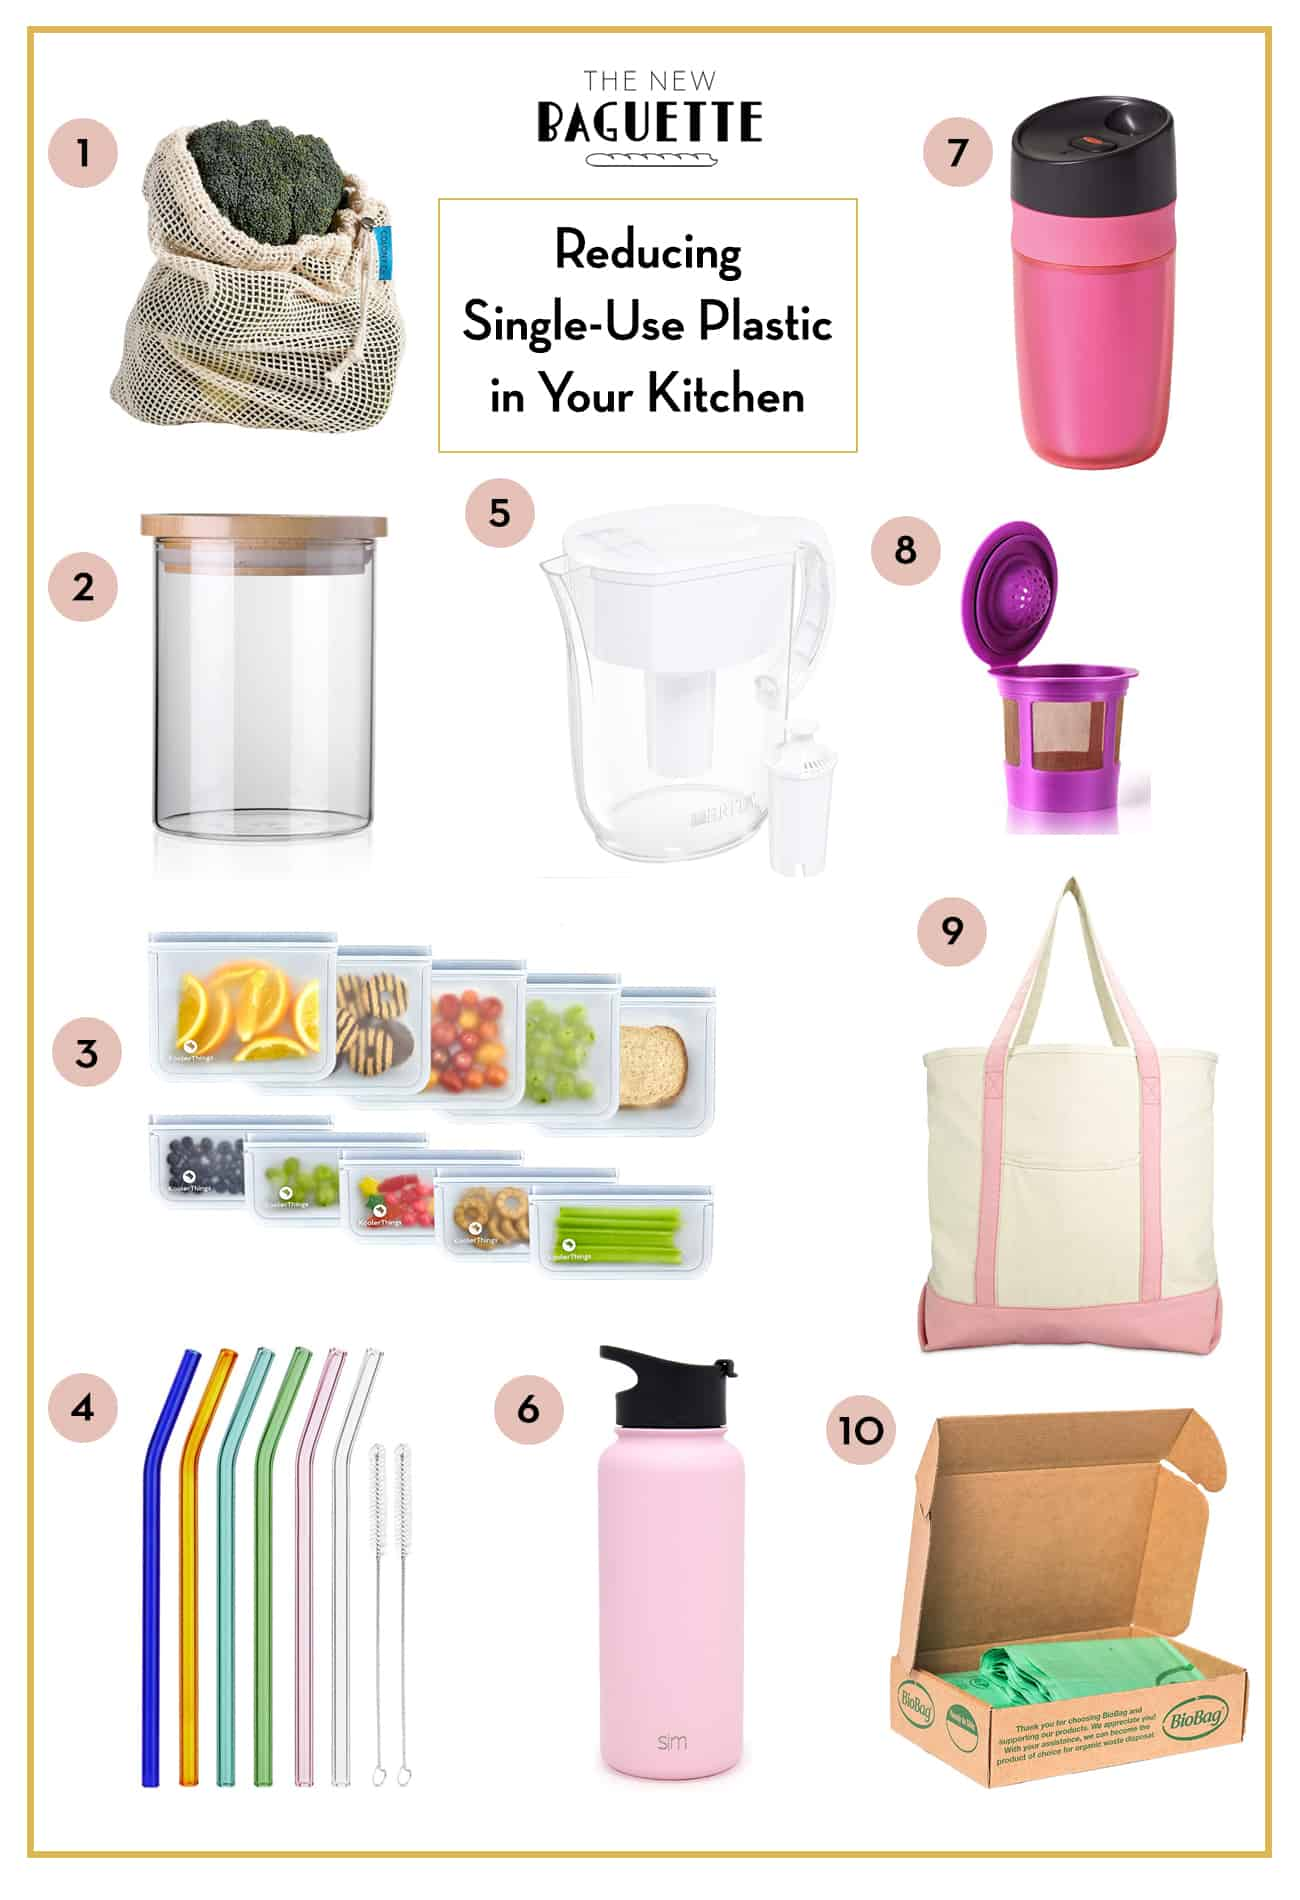 Graphic featuring eco-friendly kitchen products to reduce single-use plastic